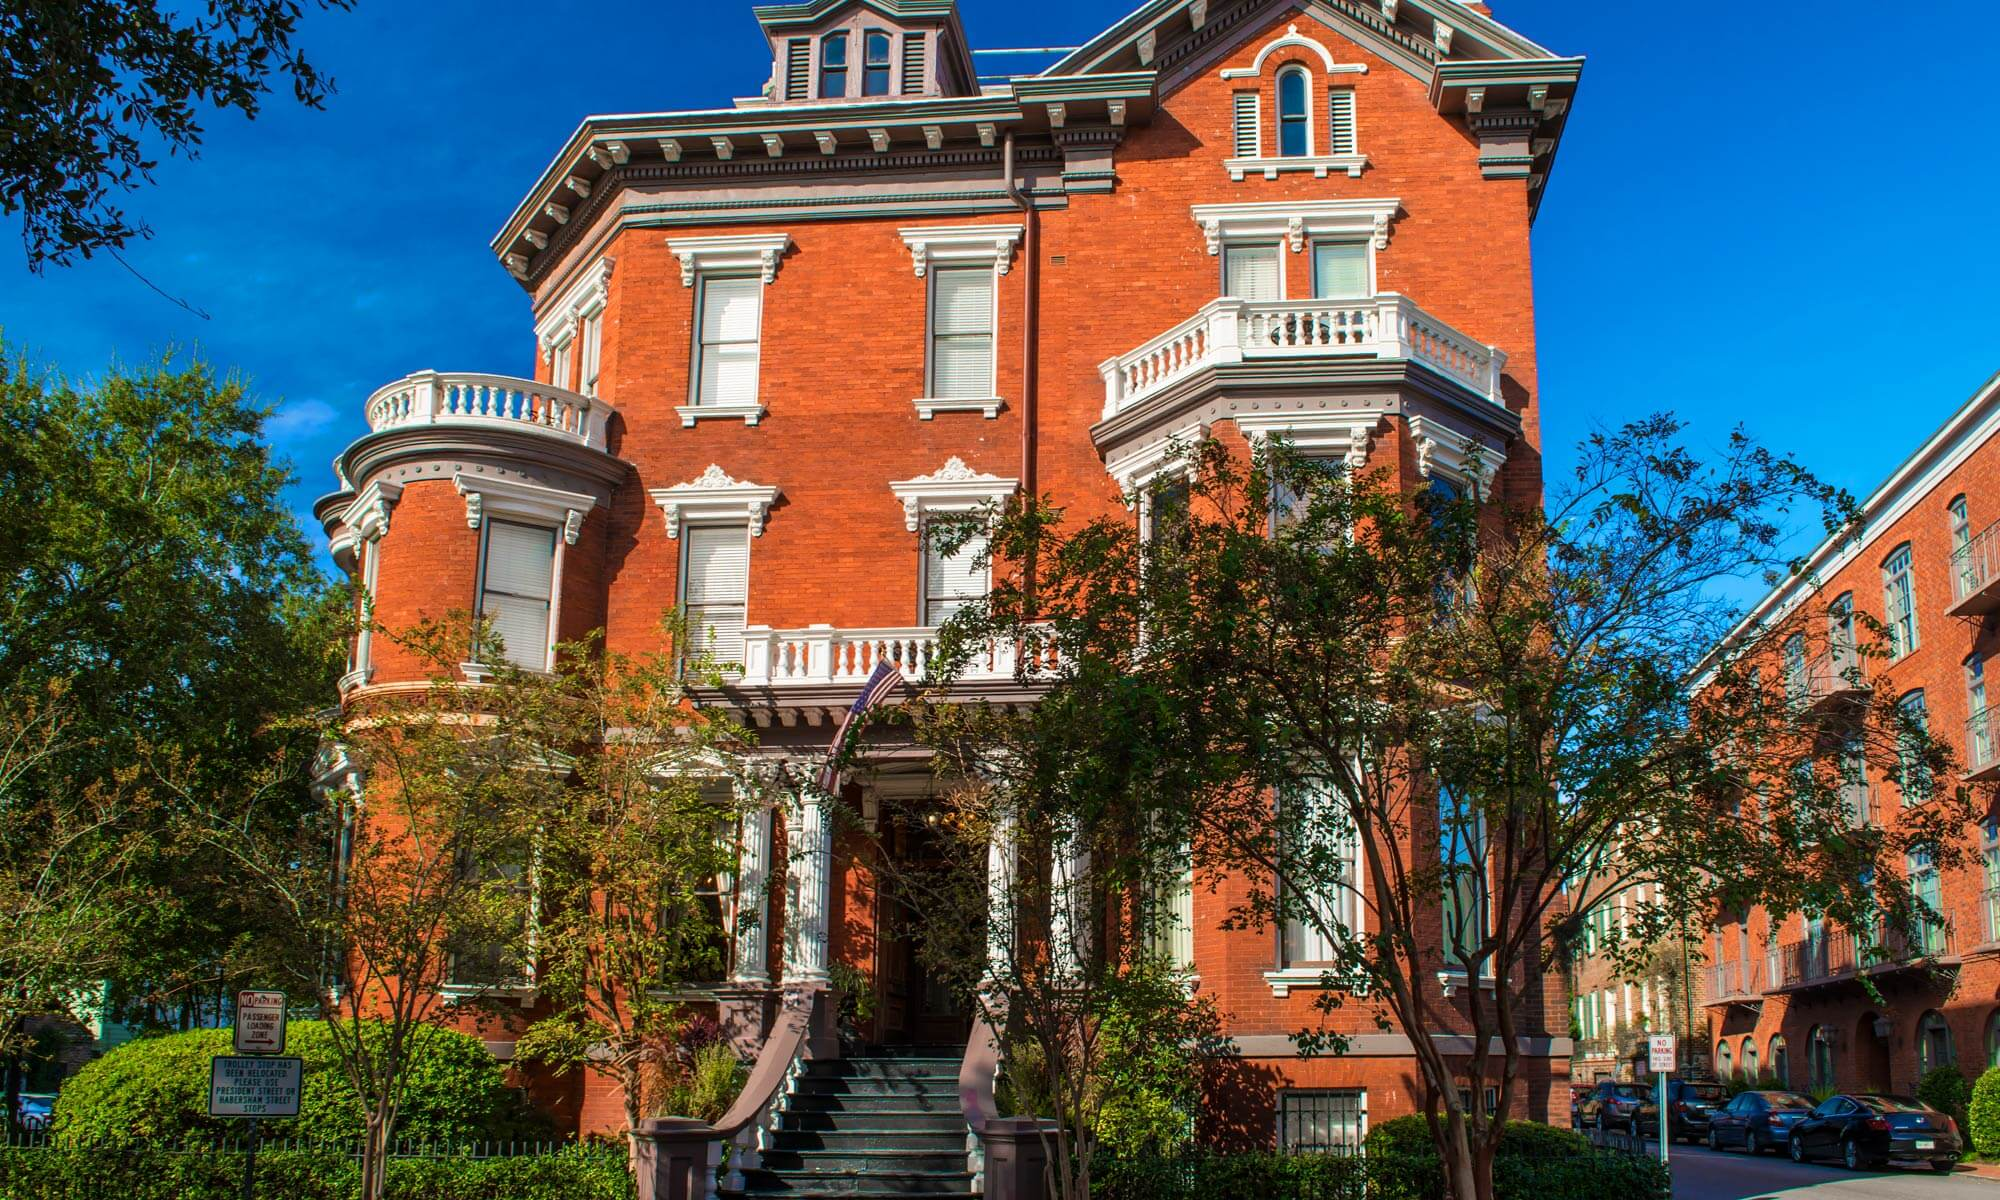 The exterior of the William Kehoe House historic bed and breakfast in Savannah, GA